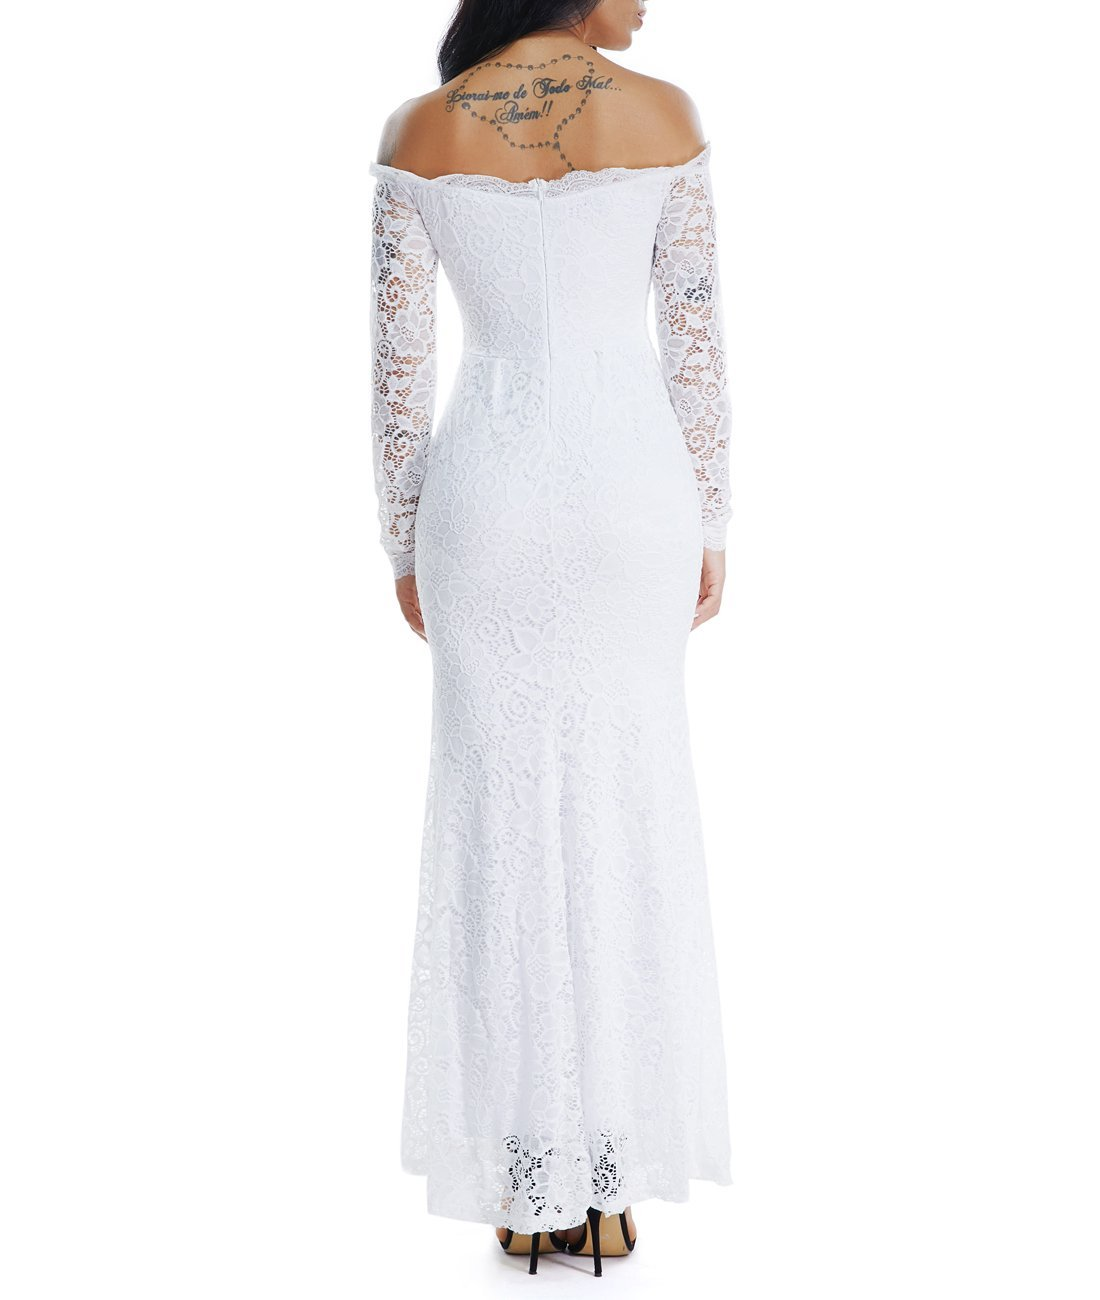 Lalagen Women's Floral Lace Long Sleeve Off Shoulder Wedding Mermaid Dress White1 S by Lalagen (Image #6)